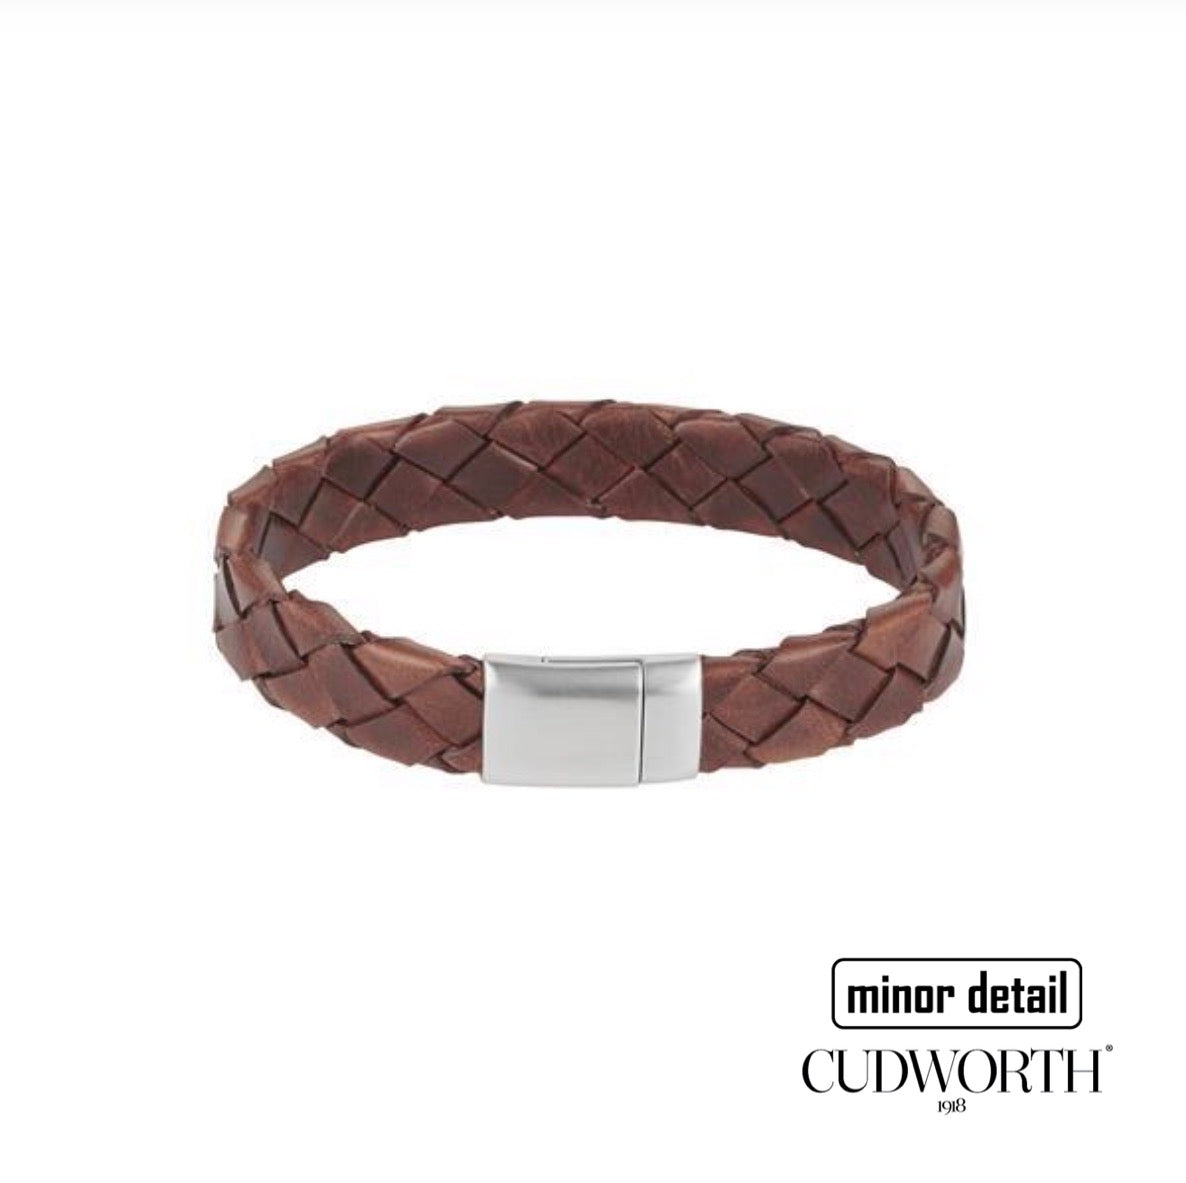 Mens leather bracelet in tobacco brown colour with stainless steel clasp